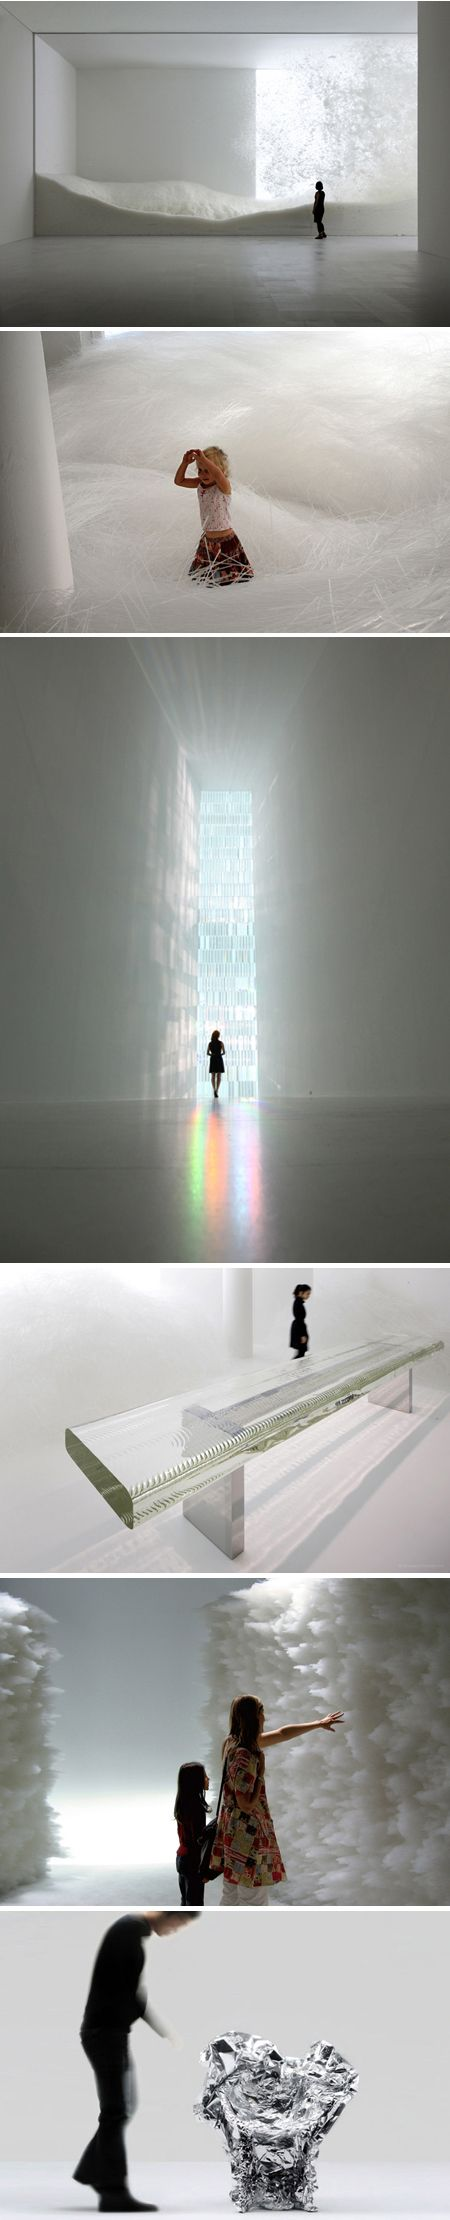 "I am in complete awe of Tokujin Yoshioka's mind and the way he talks about his pieces. He creates interiors, installations and architecture where people can feel the light with all their senses. He explores beauty born out of coincidence and beyond human imagination; his work echoes the beauty of nature with its ever-changing expression, giving the idea ""that the design doesn't even exist"".:"